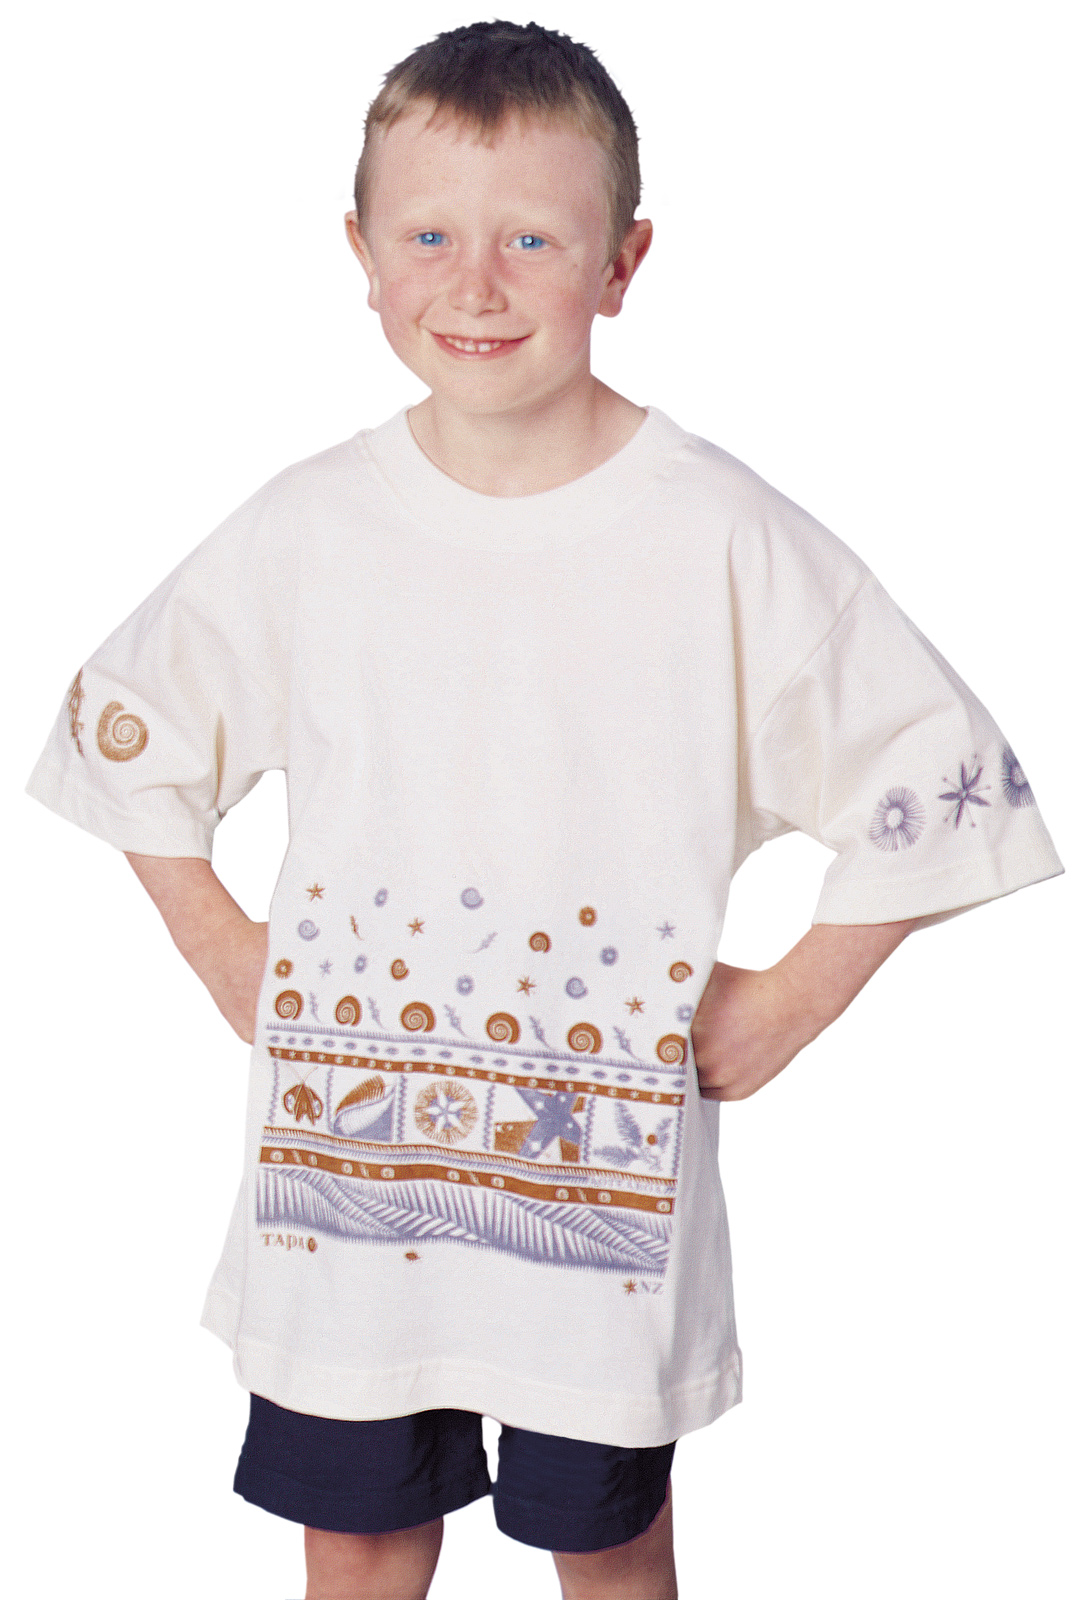 'Tapa NZ' children's T-shirt on unbleached cotton fabric.